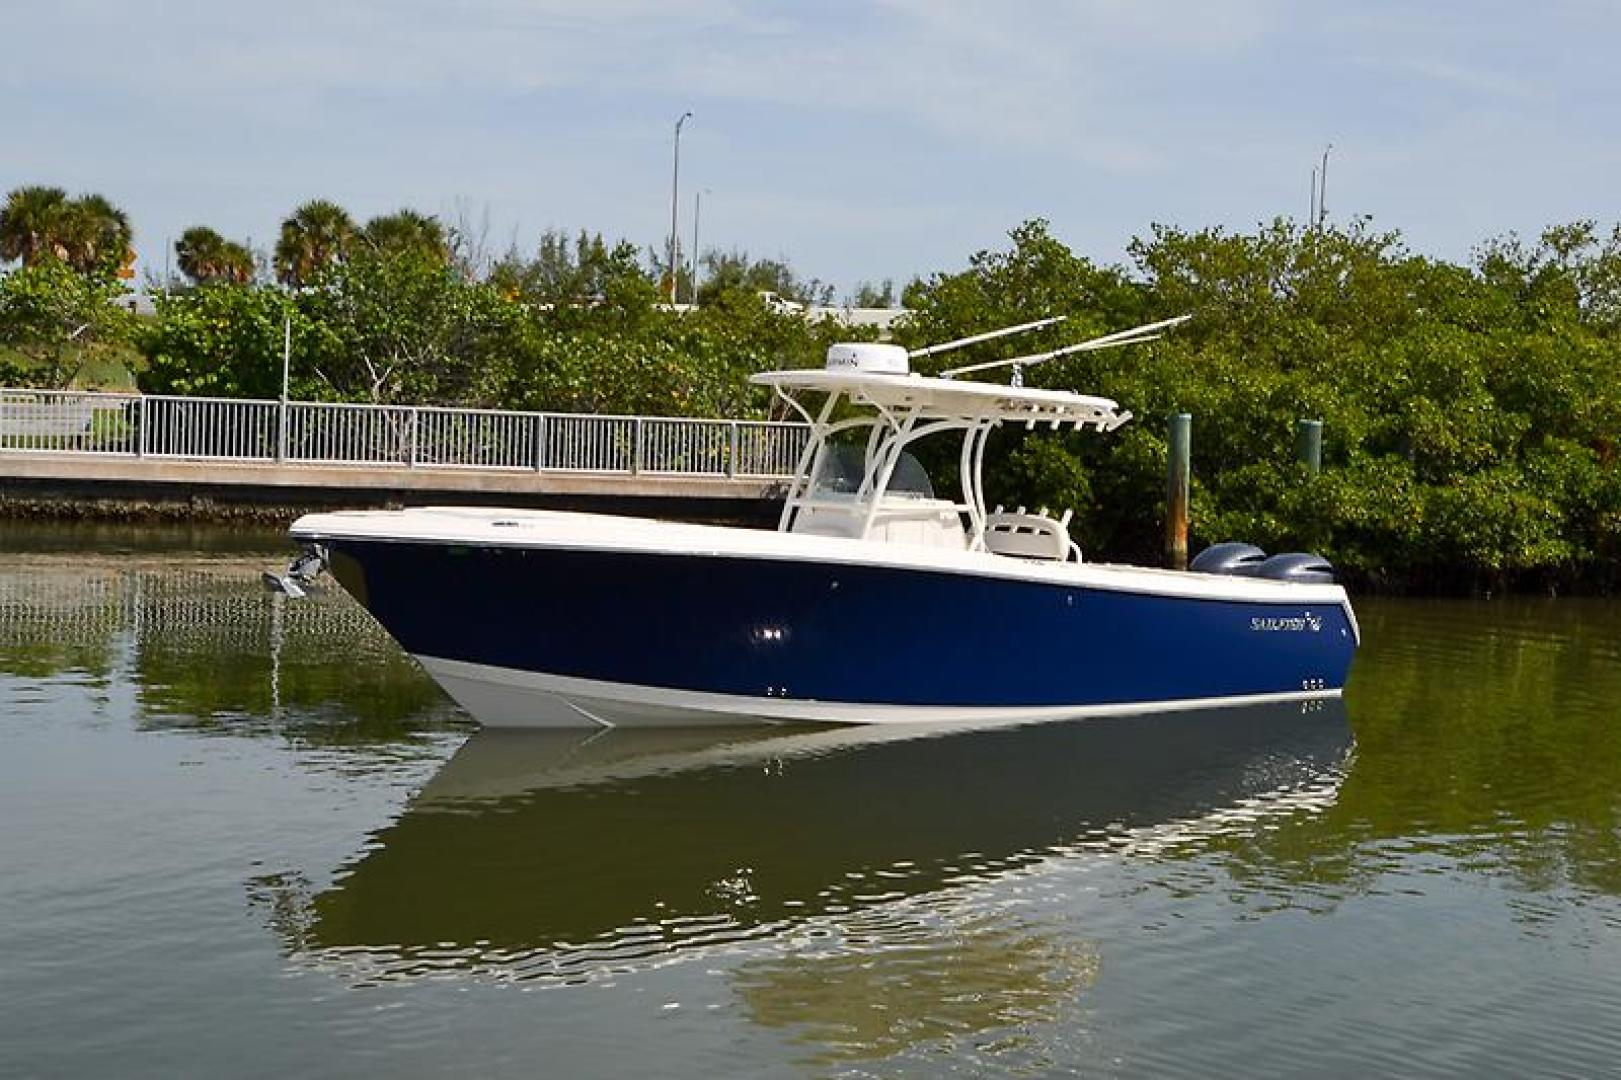 2014 Sailfish 320 cc-7.jpg